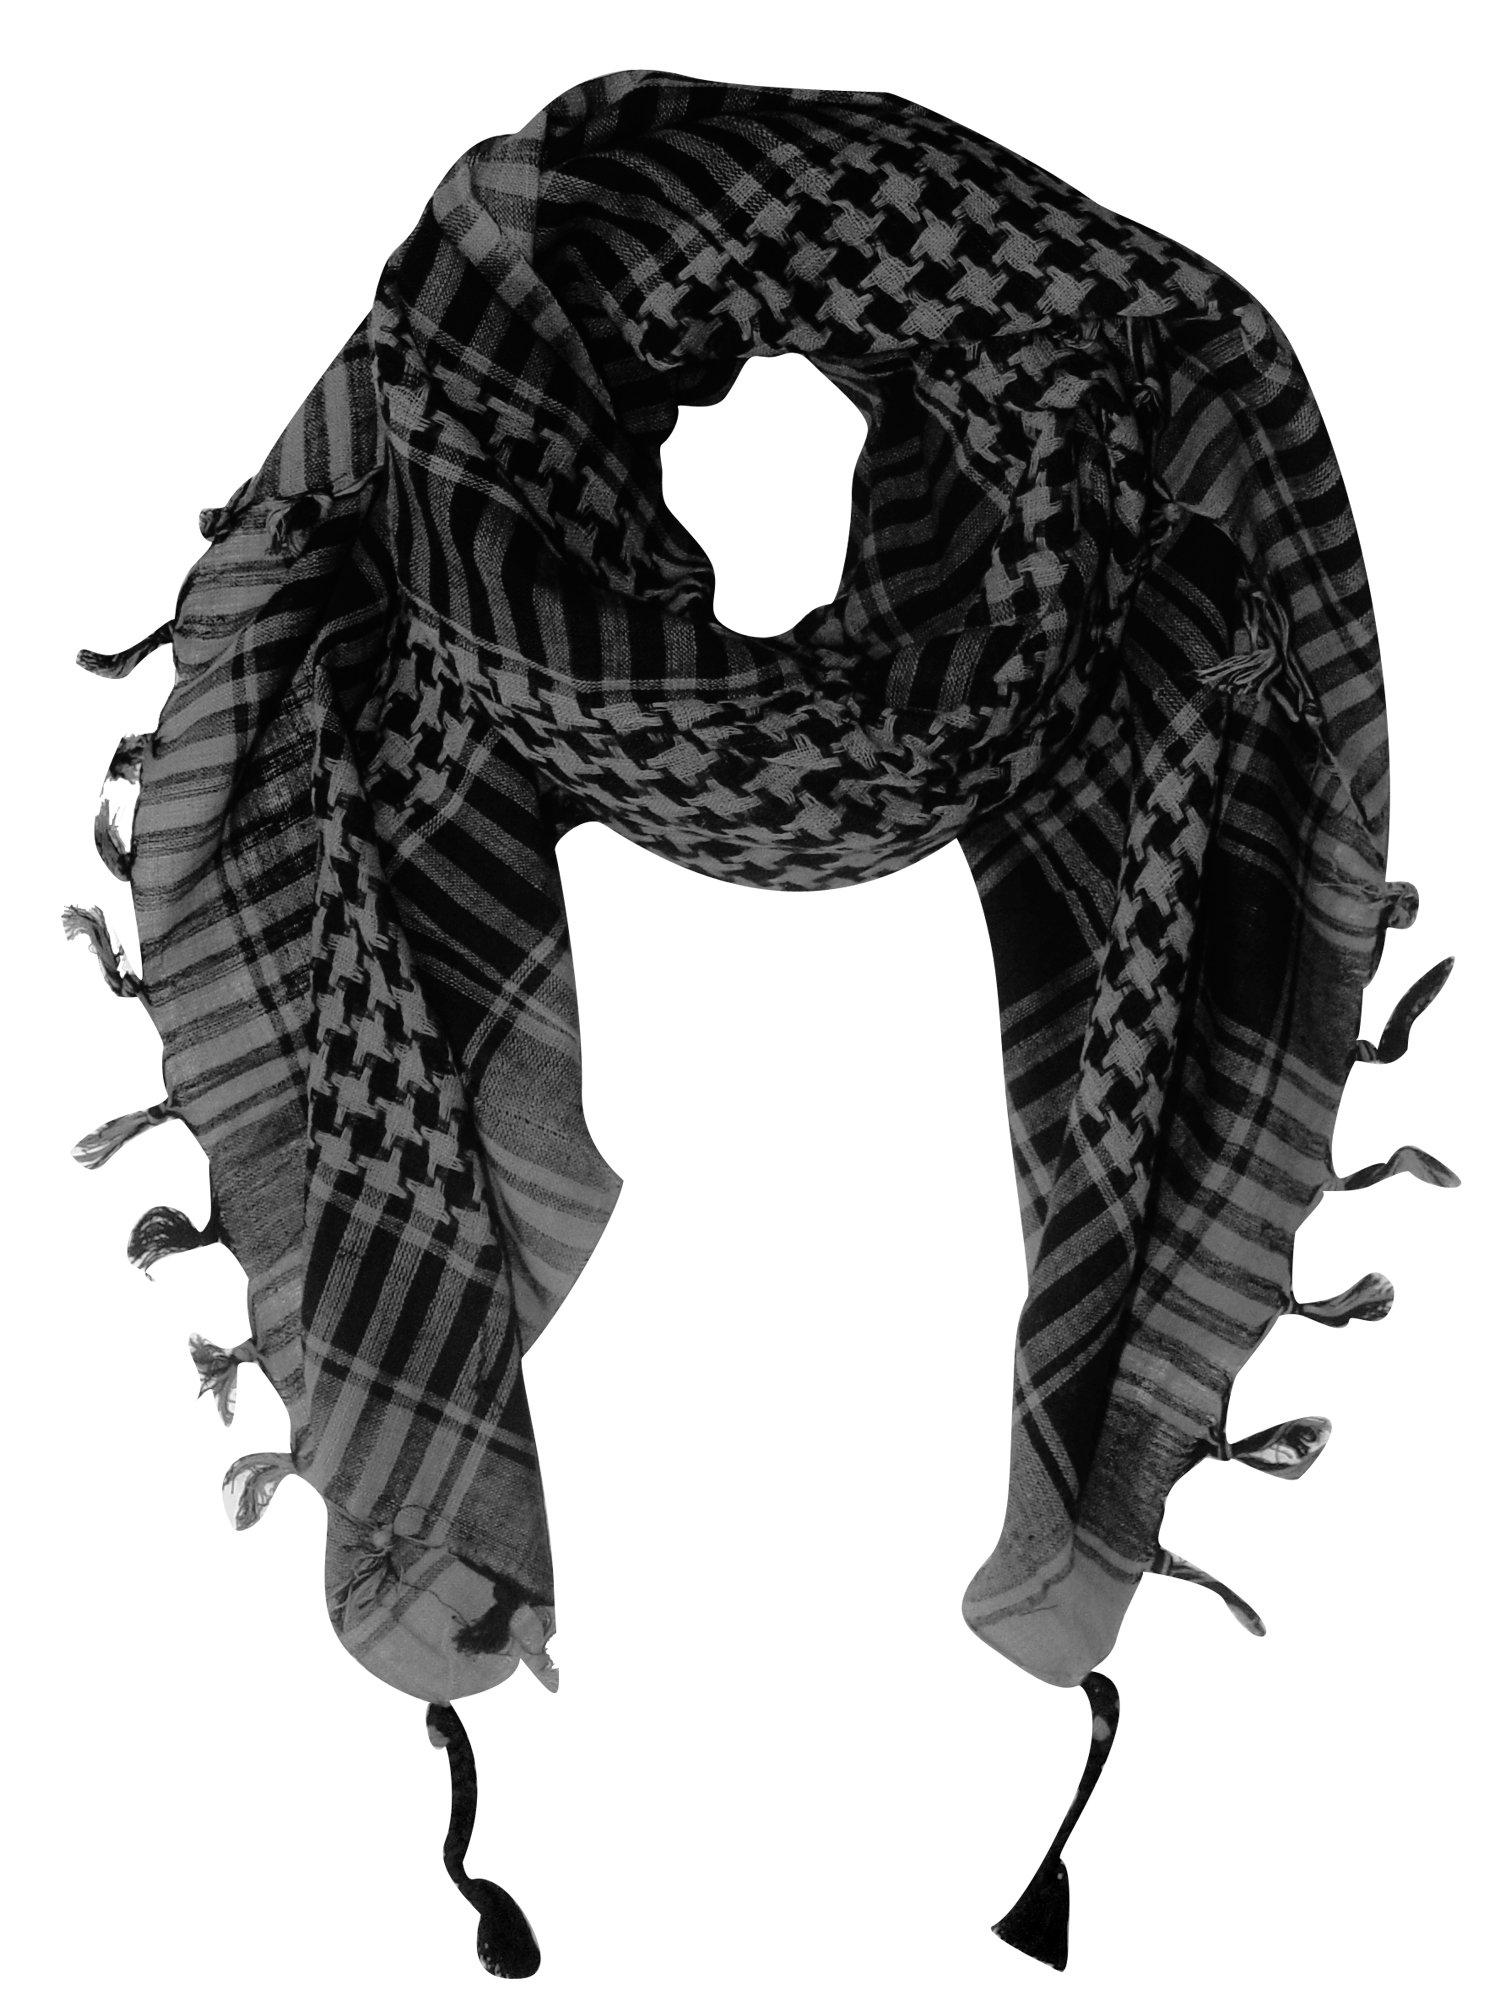 Peach Couture 100% Cotton Unisex Tactical Military Shemagh Keffiyeh Scarf Wrap Grey/Black